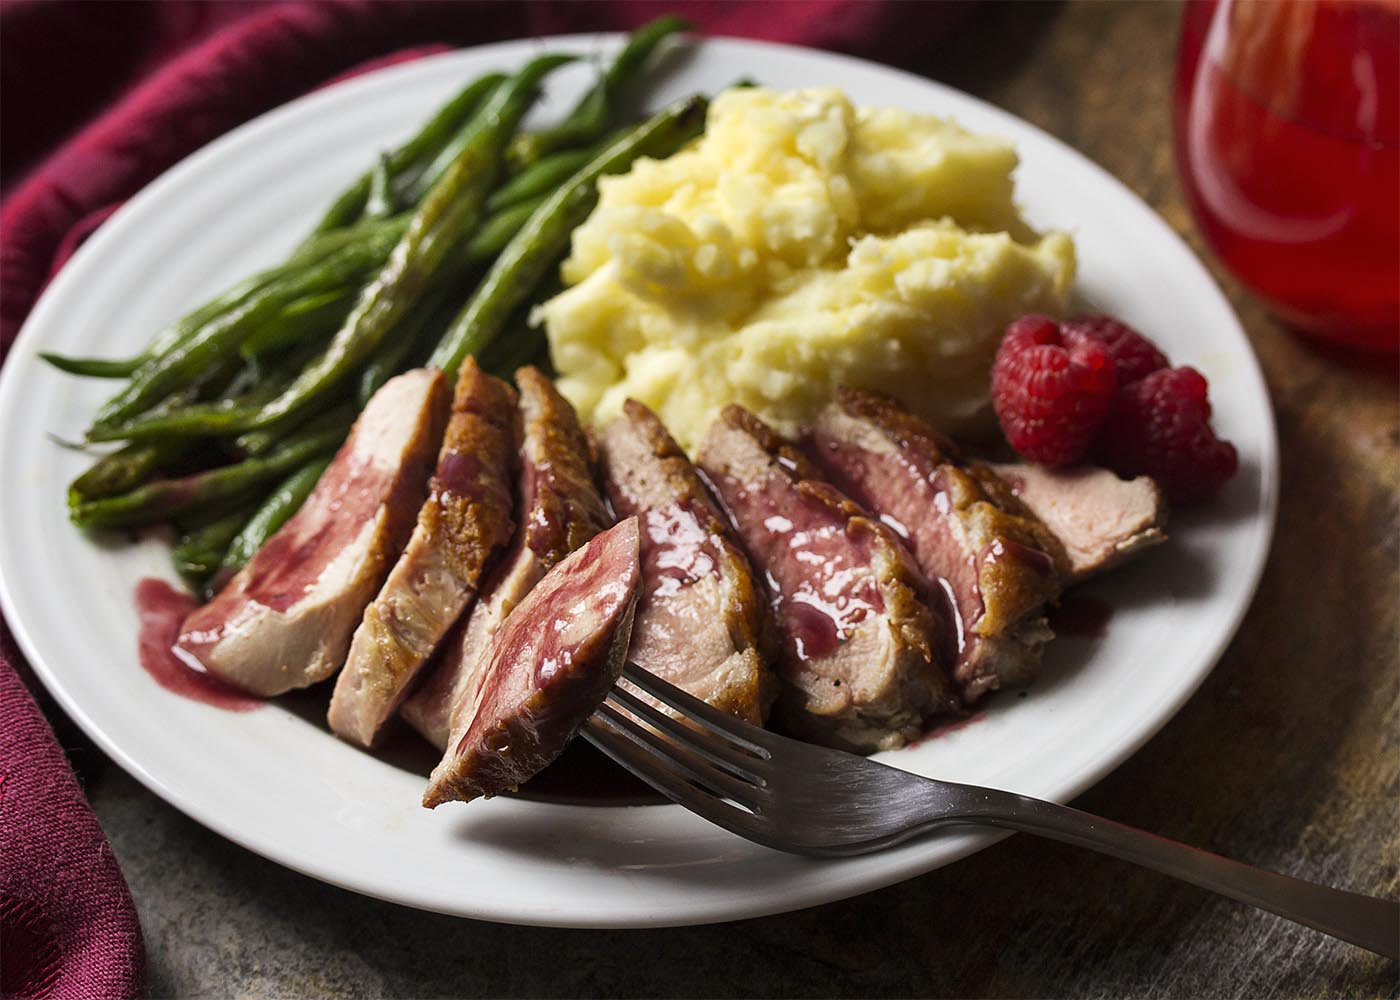 Sliced duck breast on a plate covered with raspberry sauce with a fork lifting a piece